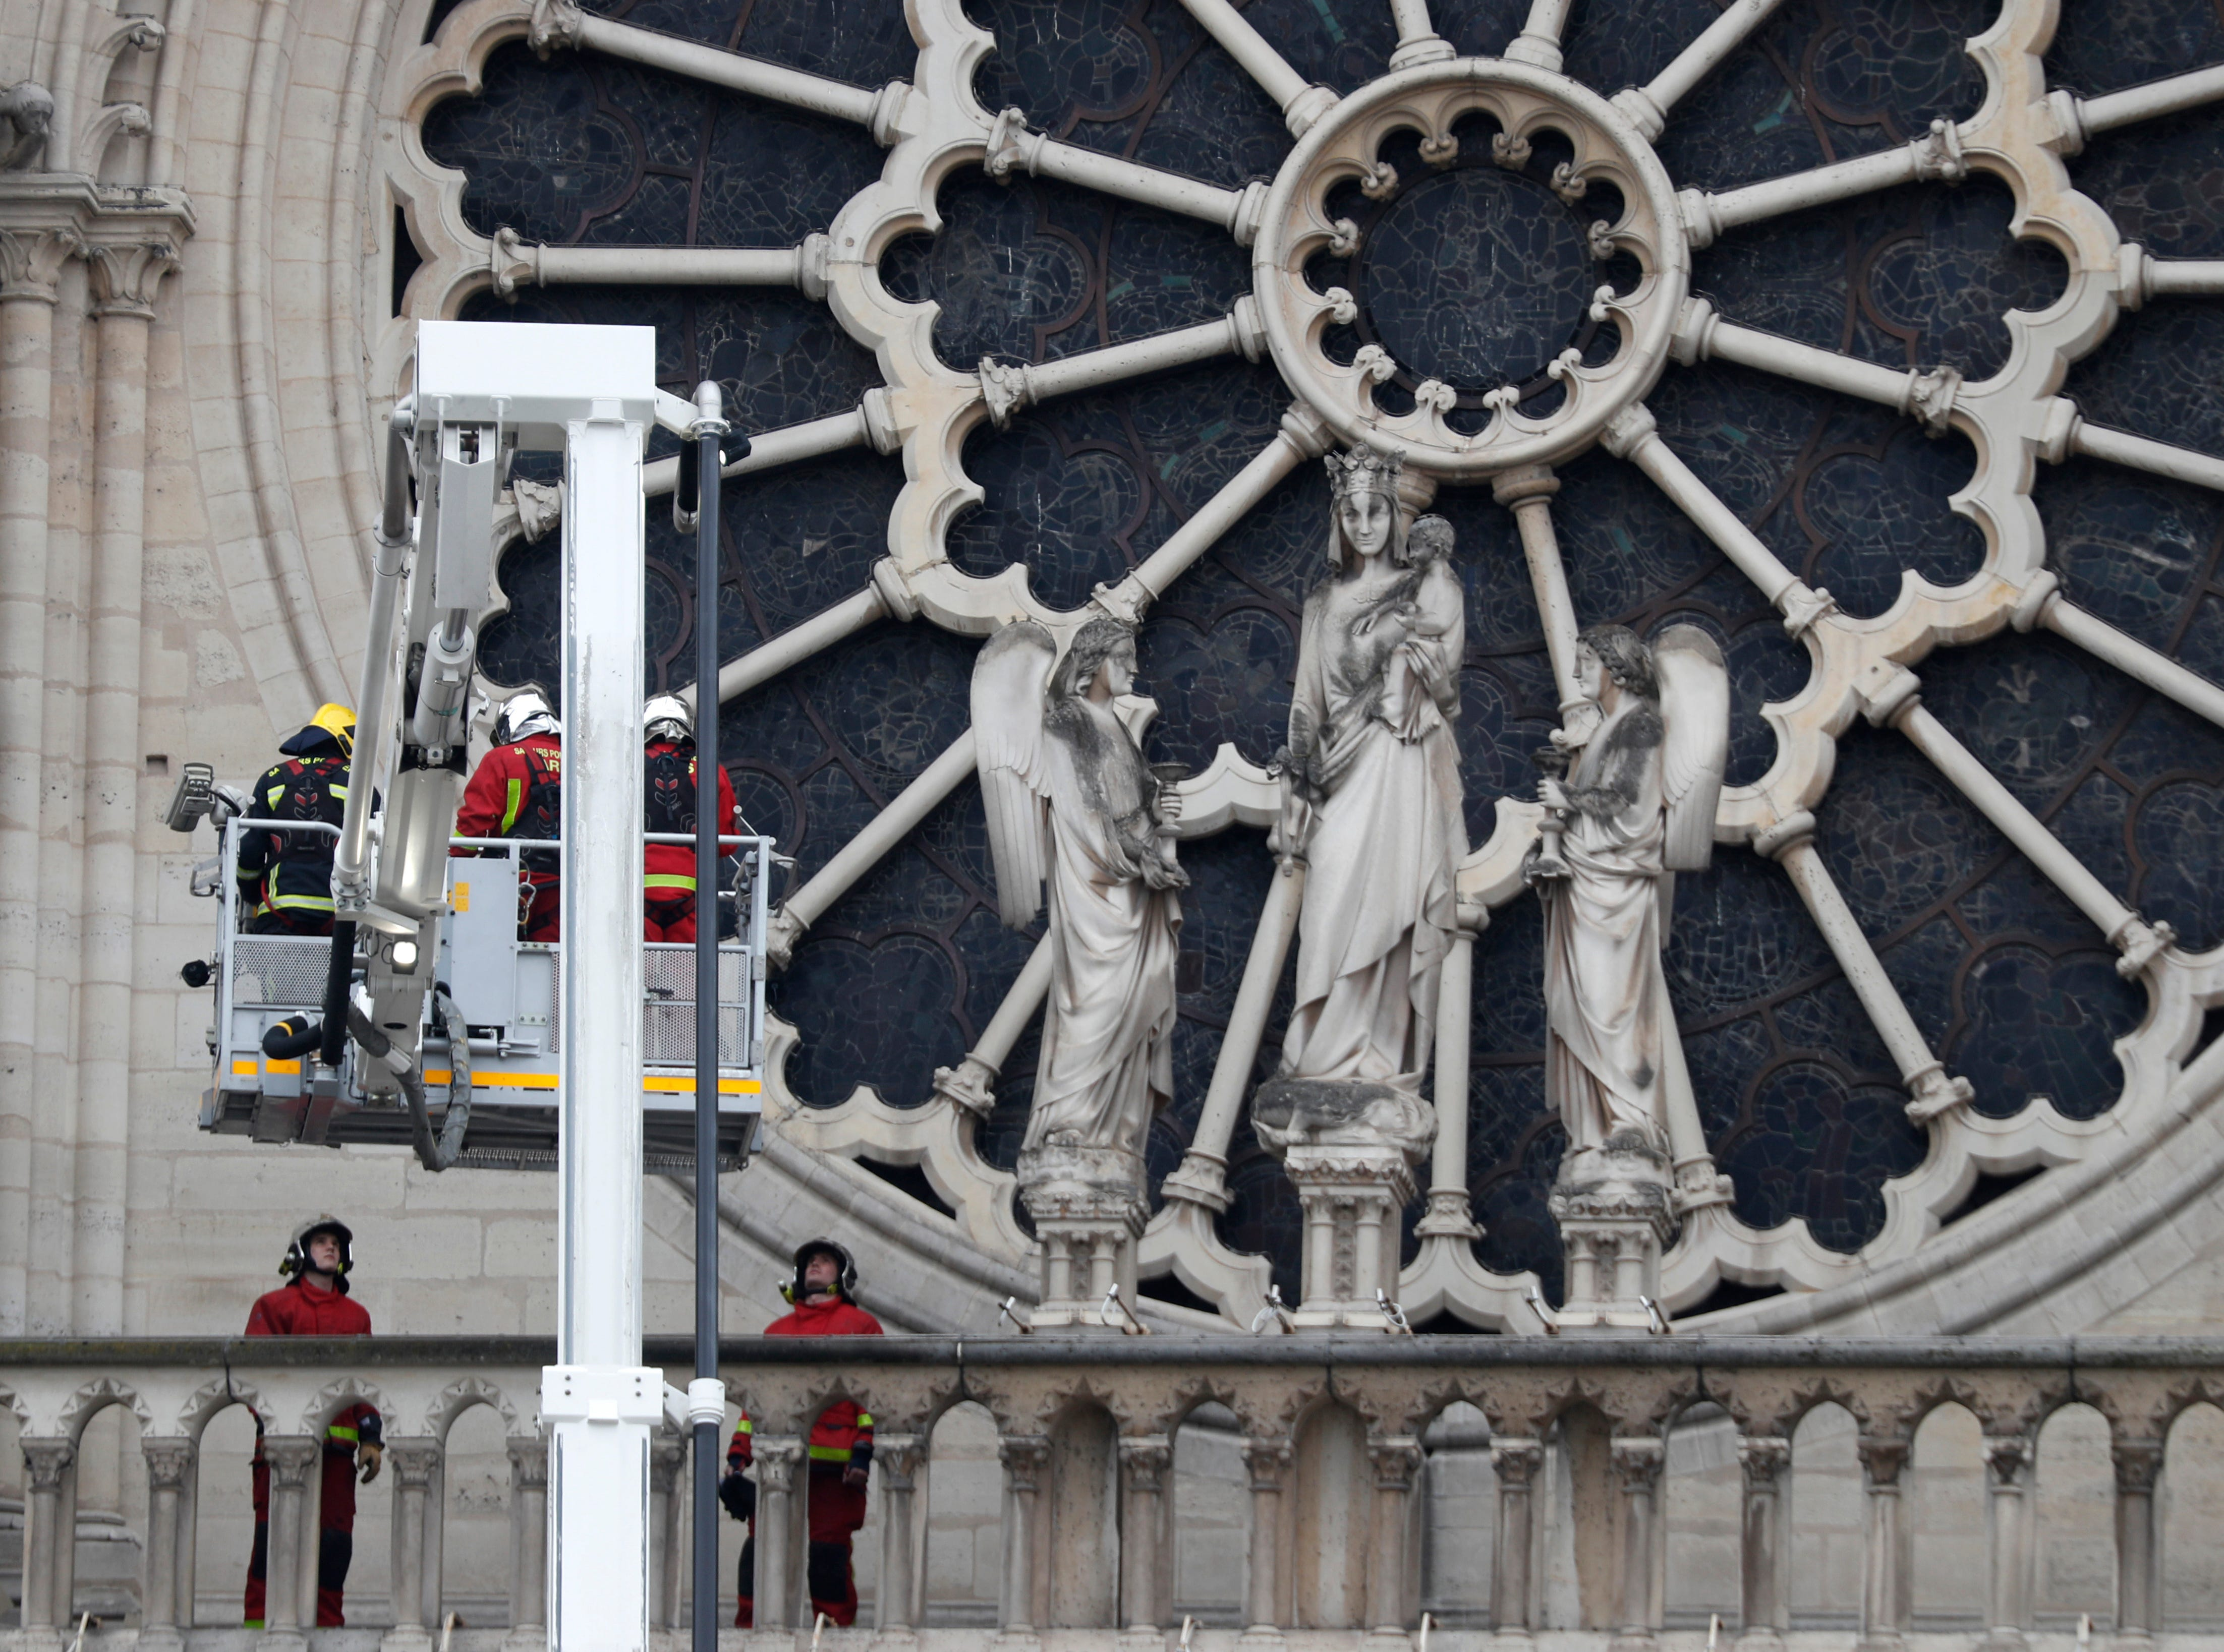 Firefighters work near the rose window of Notre Dame cathedral Tuesday April 16, 2019 in Paris. Experts assessed the blackened shell of Paris' iconic Notre Dame Tuesday morning to establish next steps to save what remains after a devastating fire destroyed much of the cathedral that had survived almost 900 years of history. (AP Photo/Thibault Camus)